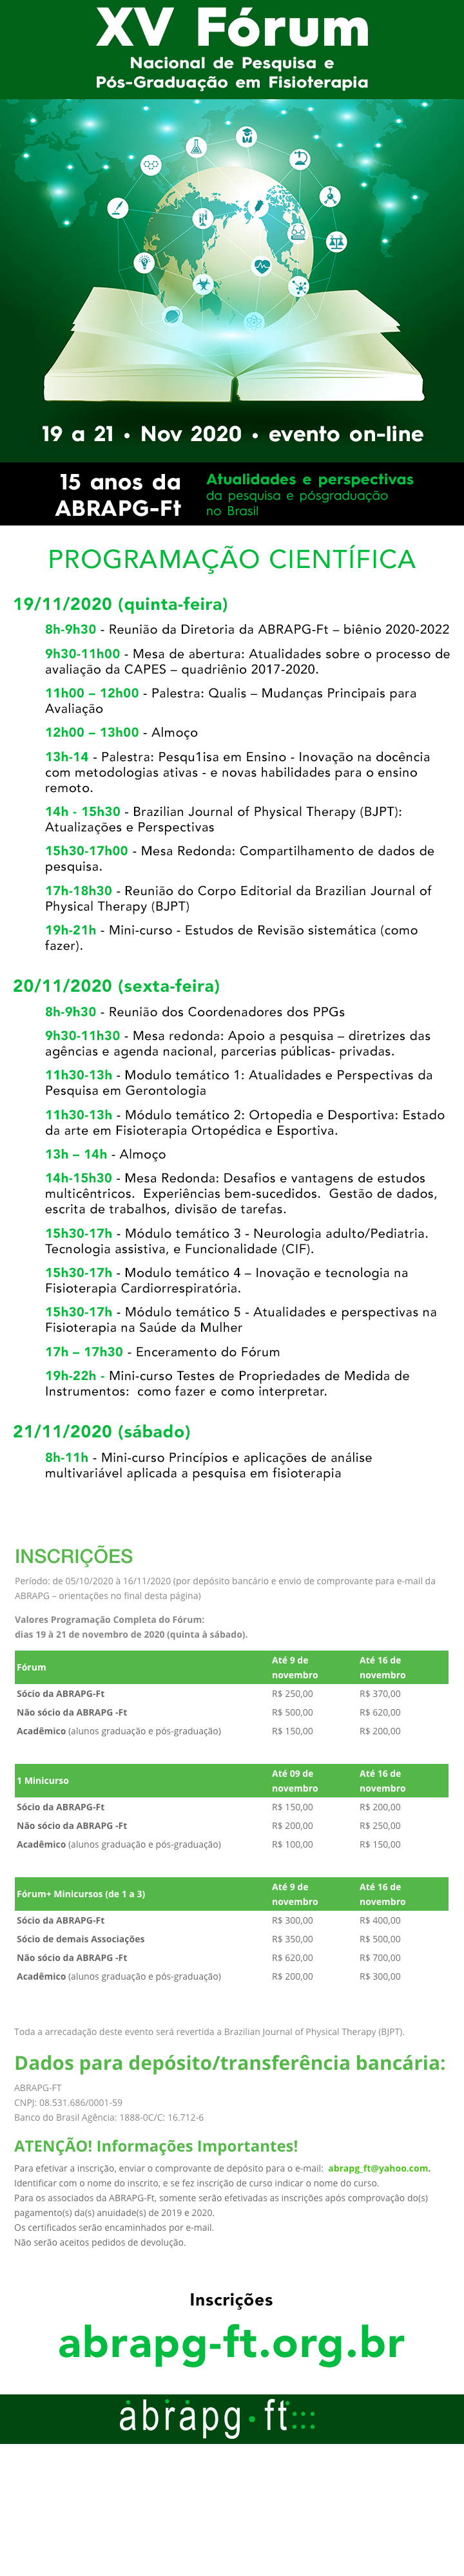 XV_email_mkt-livro.png